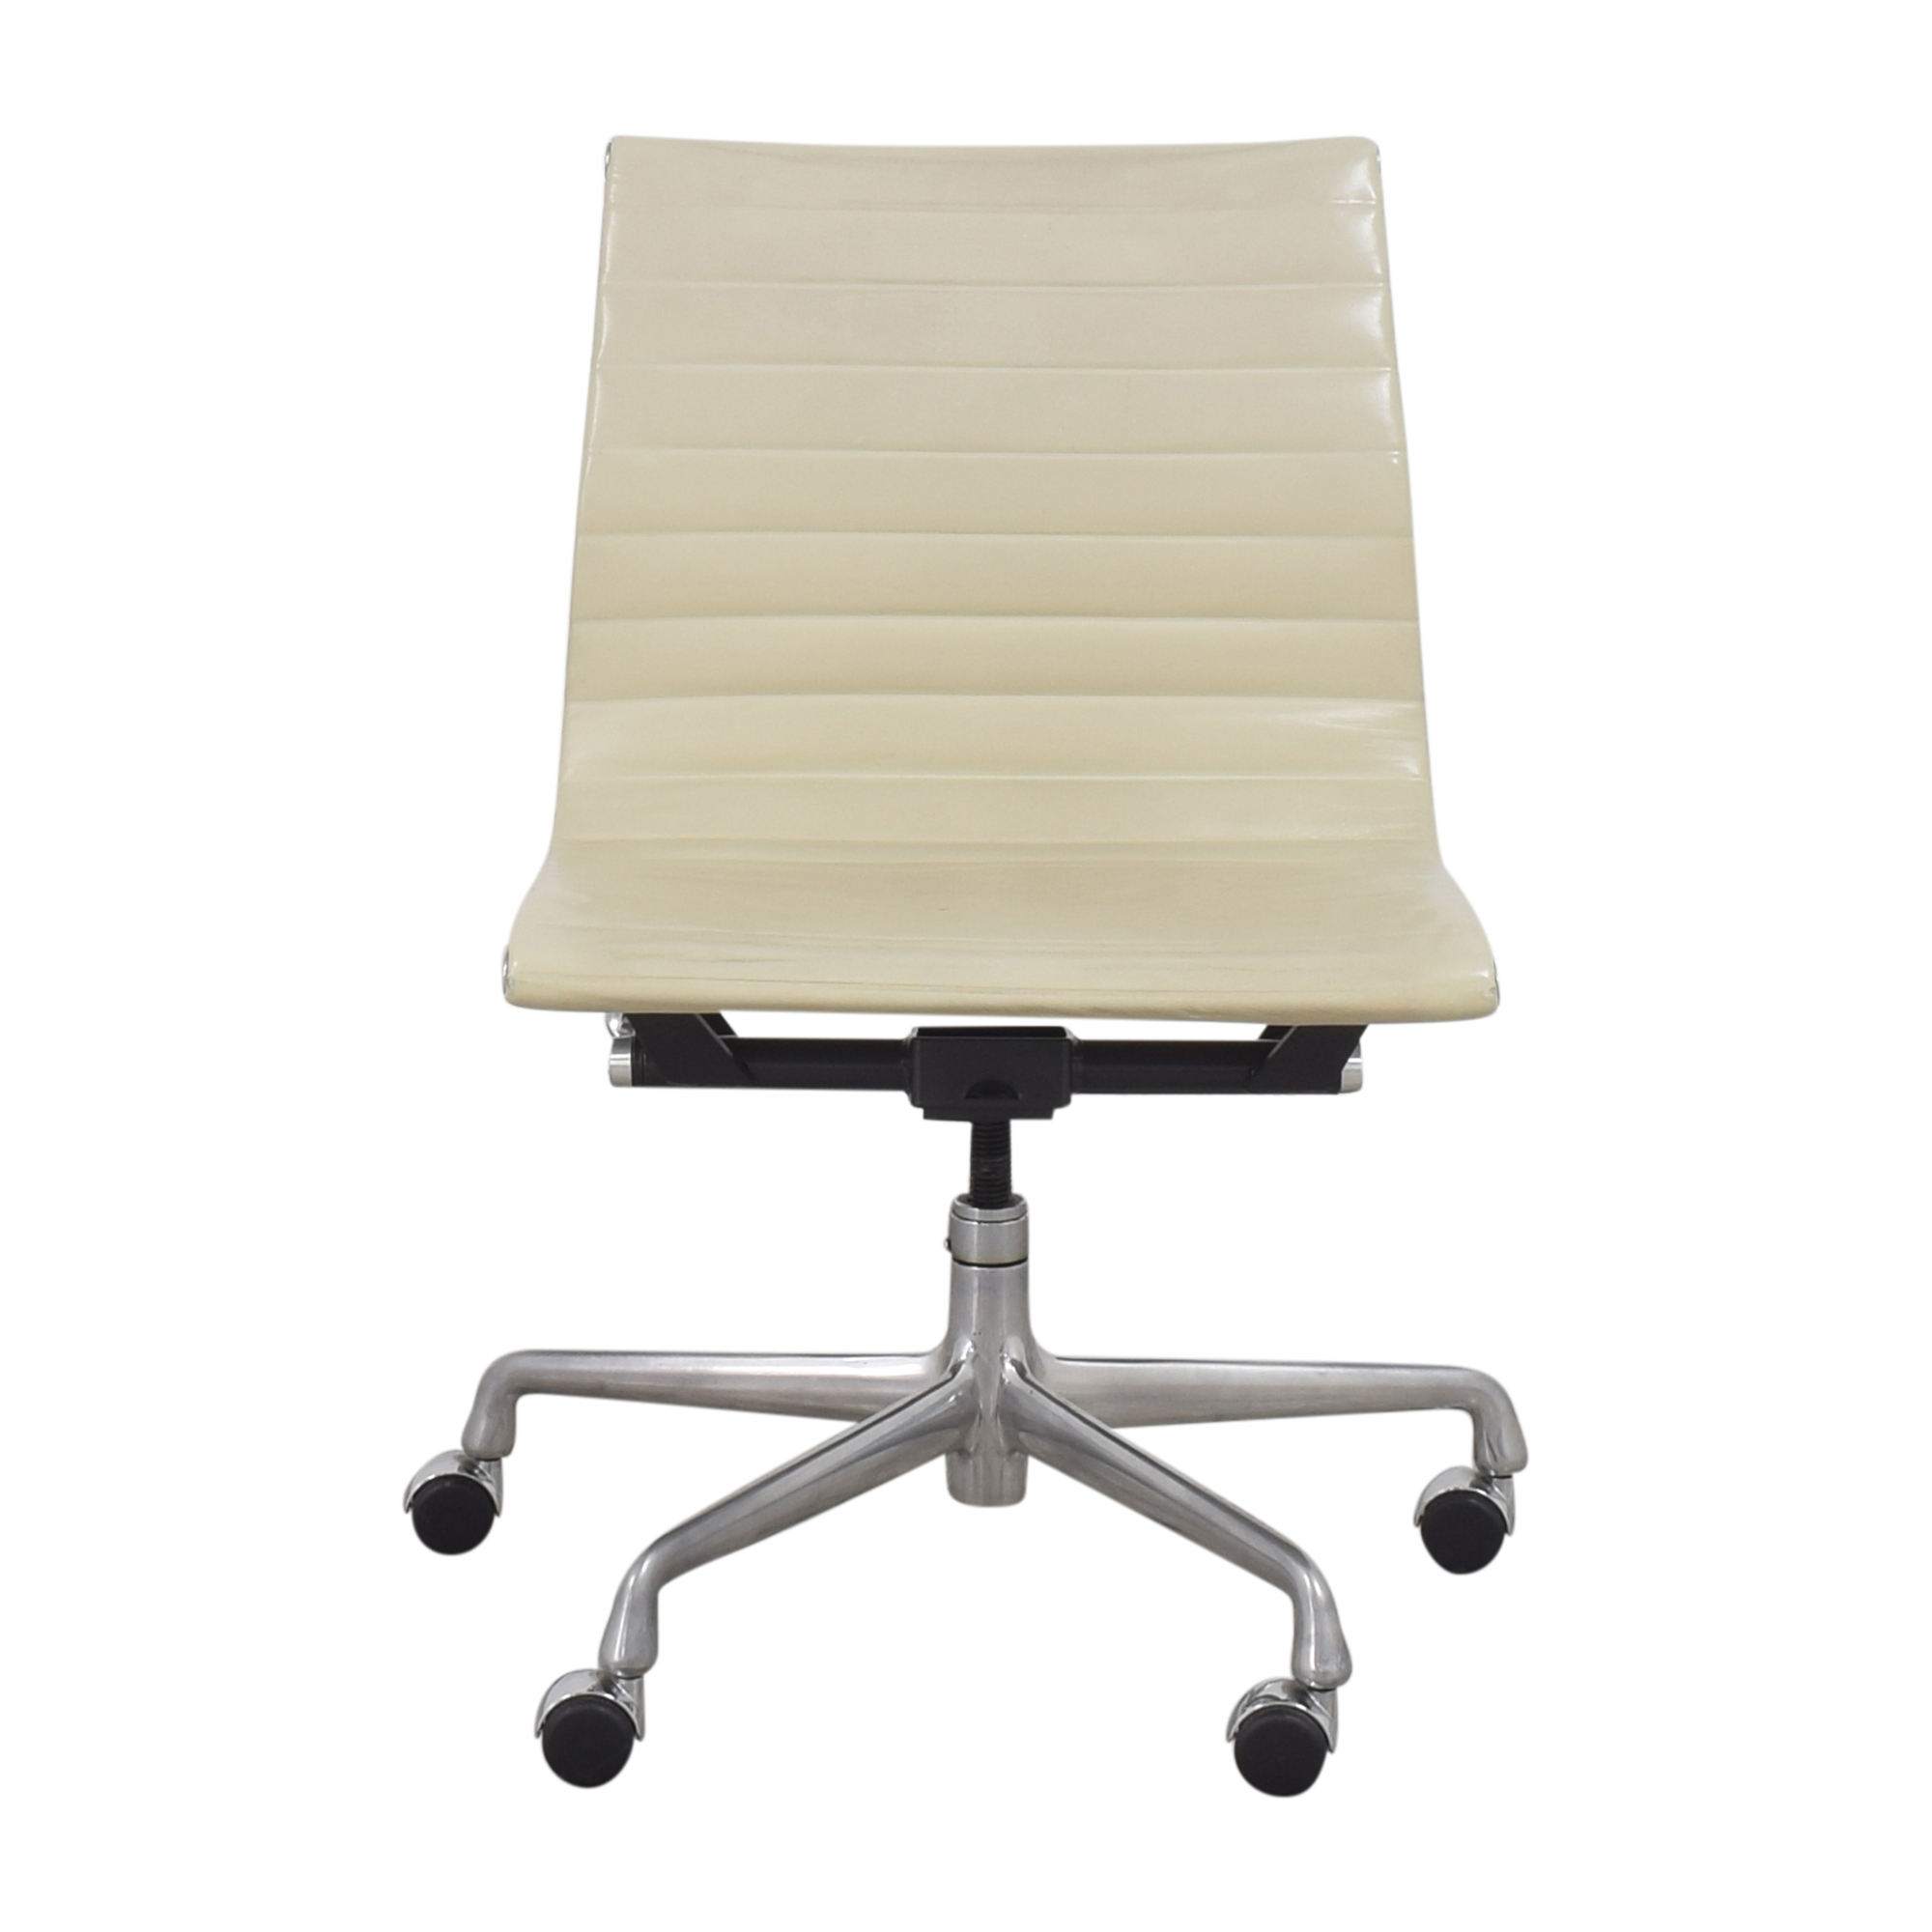 Knoll Knoll Eames Aluminum Group Management Chair second hand